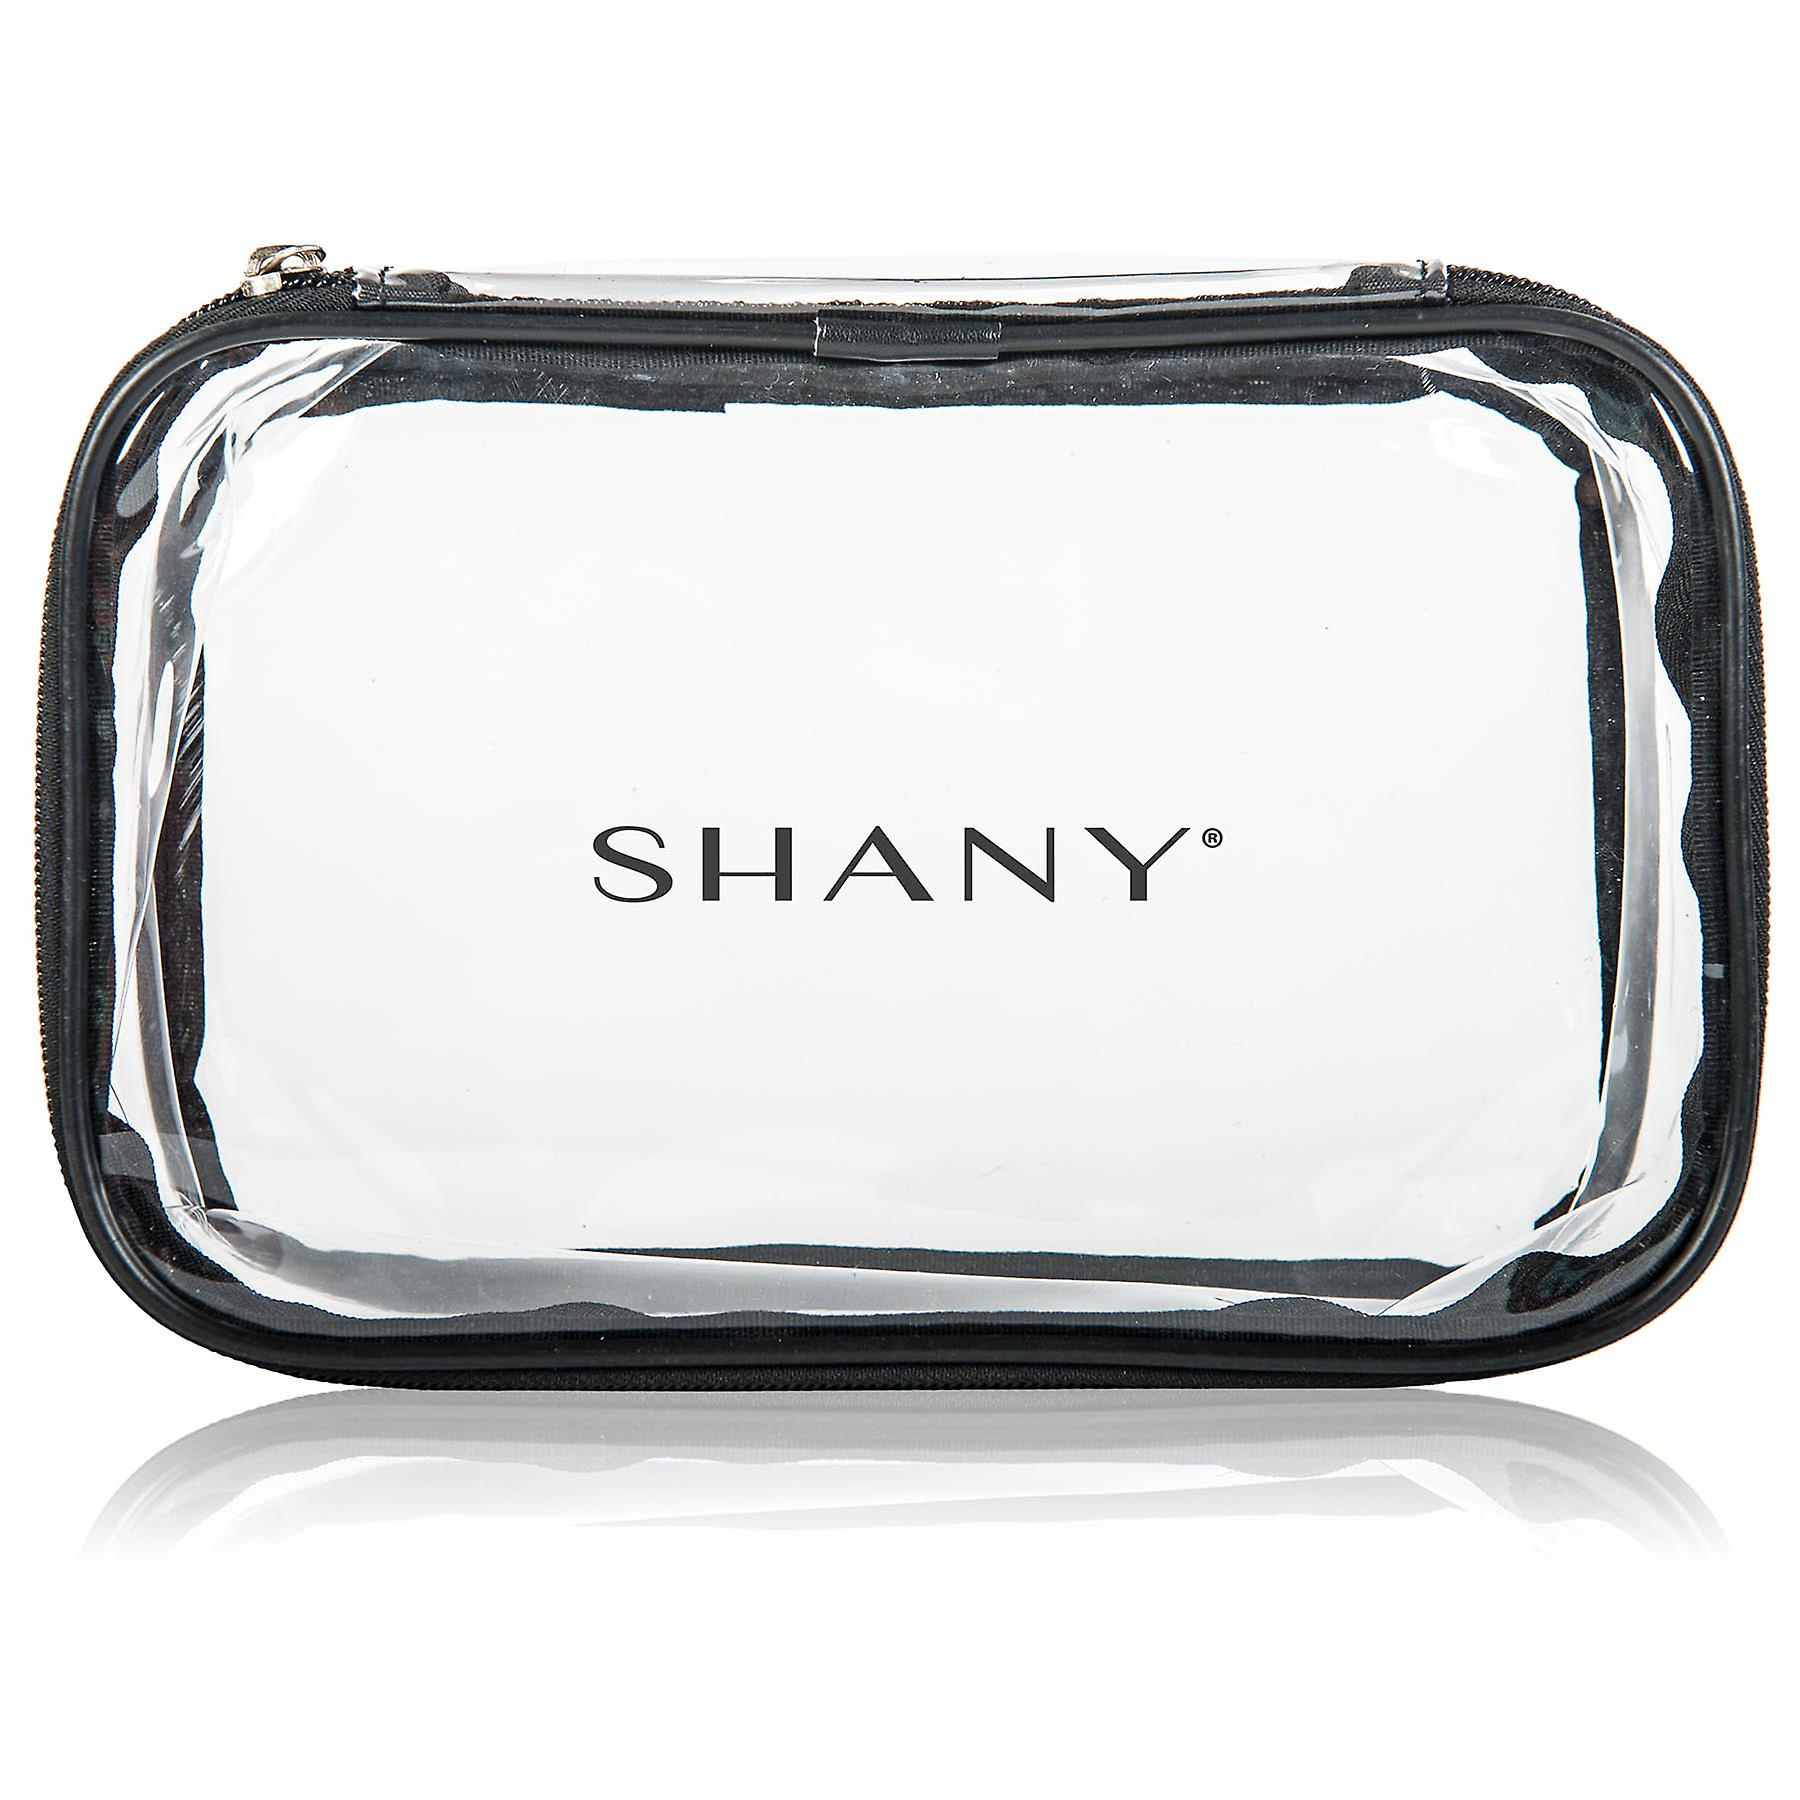 SHANY Slumber Party Cosmetics Clear Travel Bag - Waterproof Multi-use Makeup , Nail and Travel Storage - 1 Count